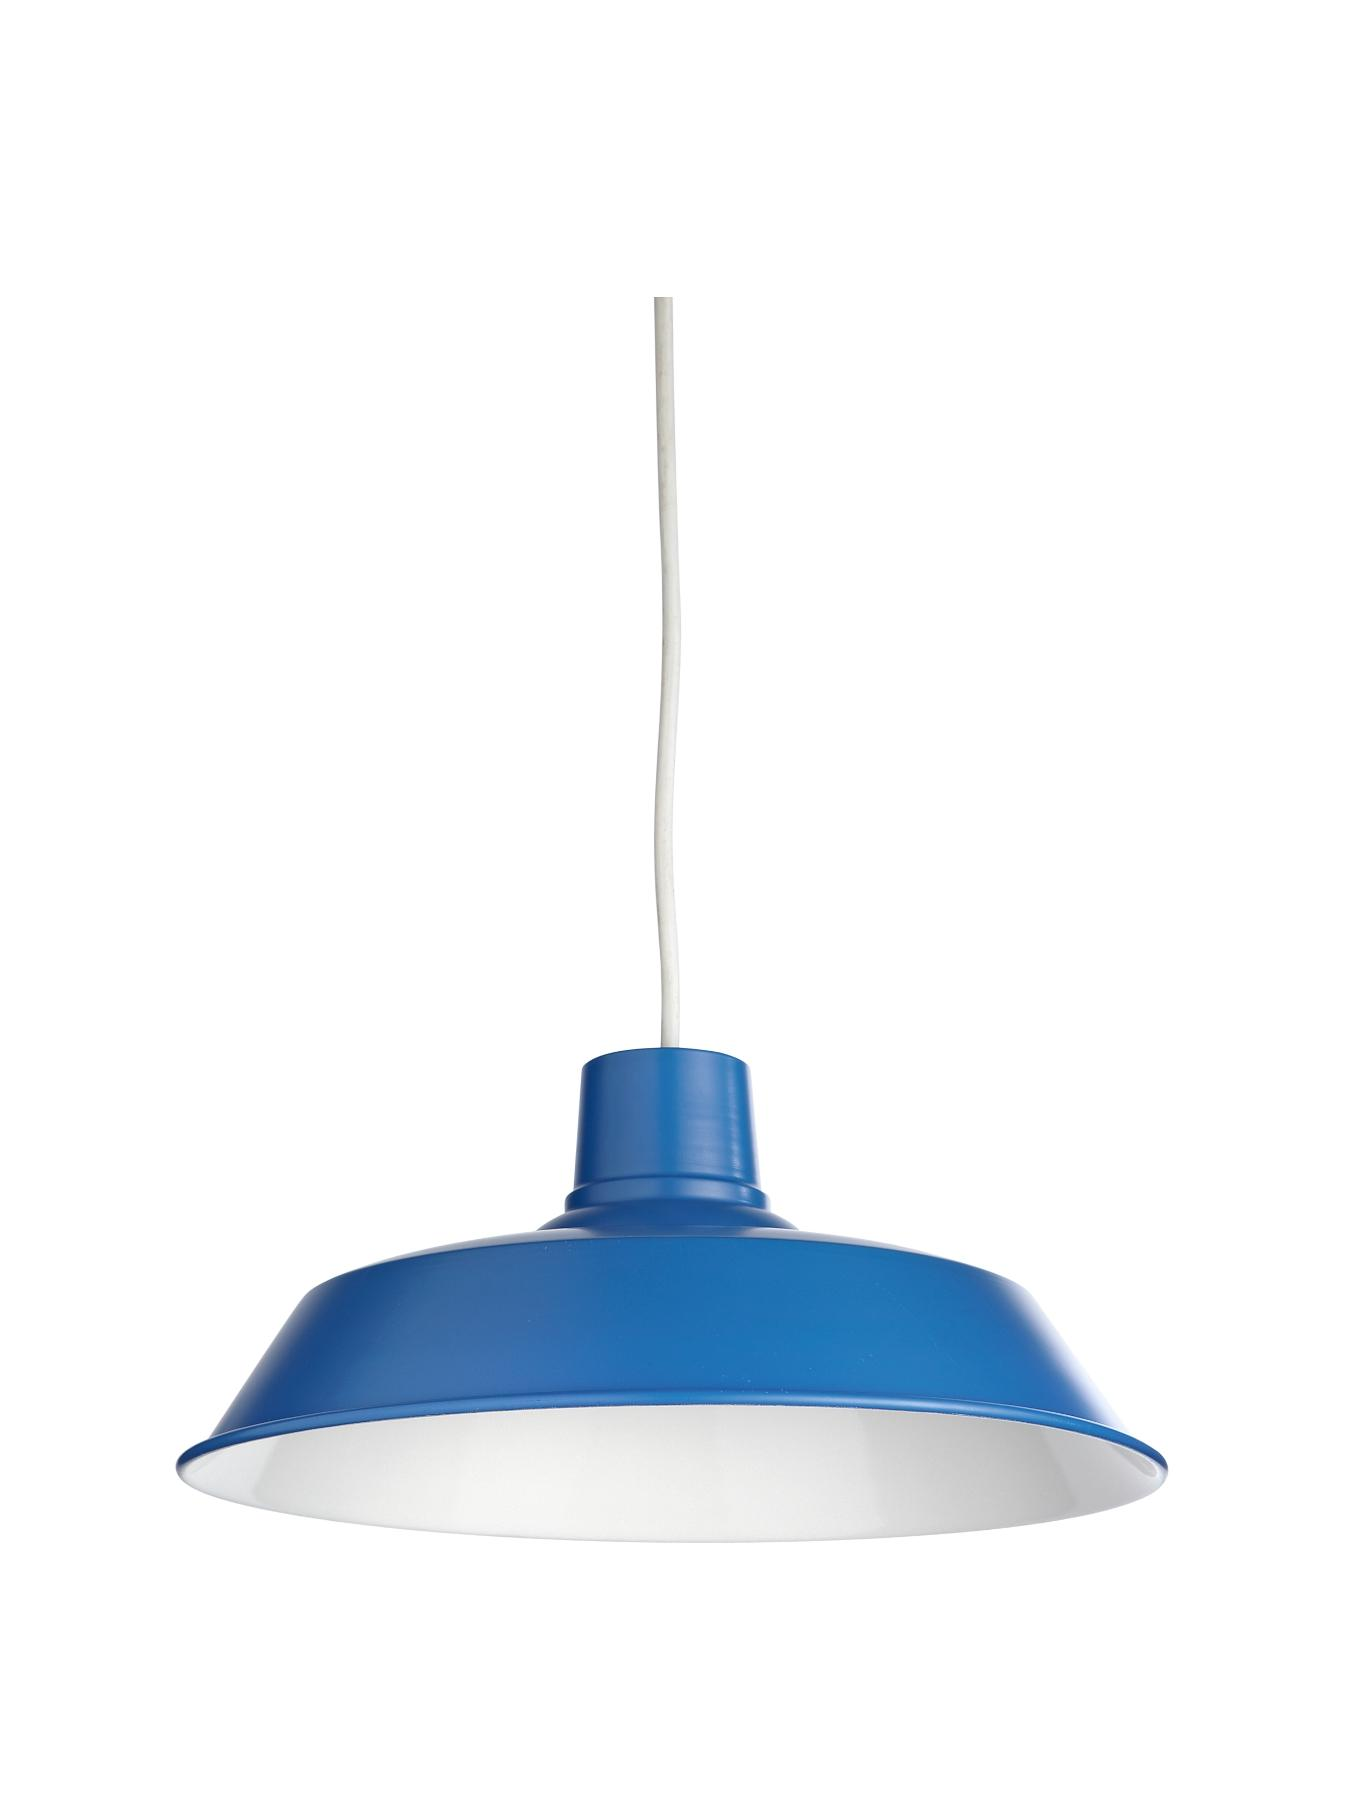 Image of Anneka Easy Fit Pendant Light Fitting